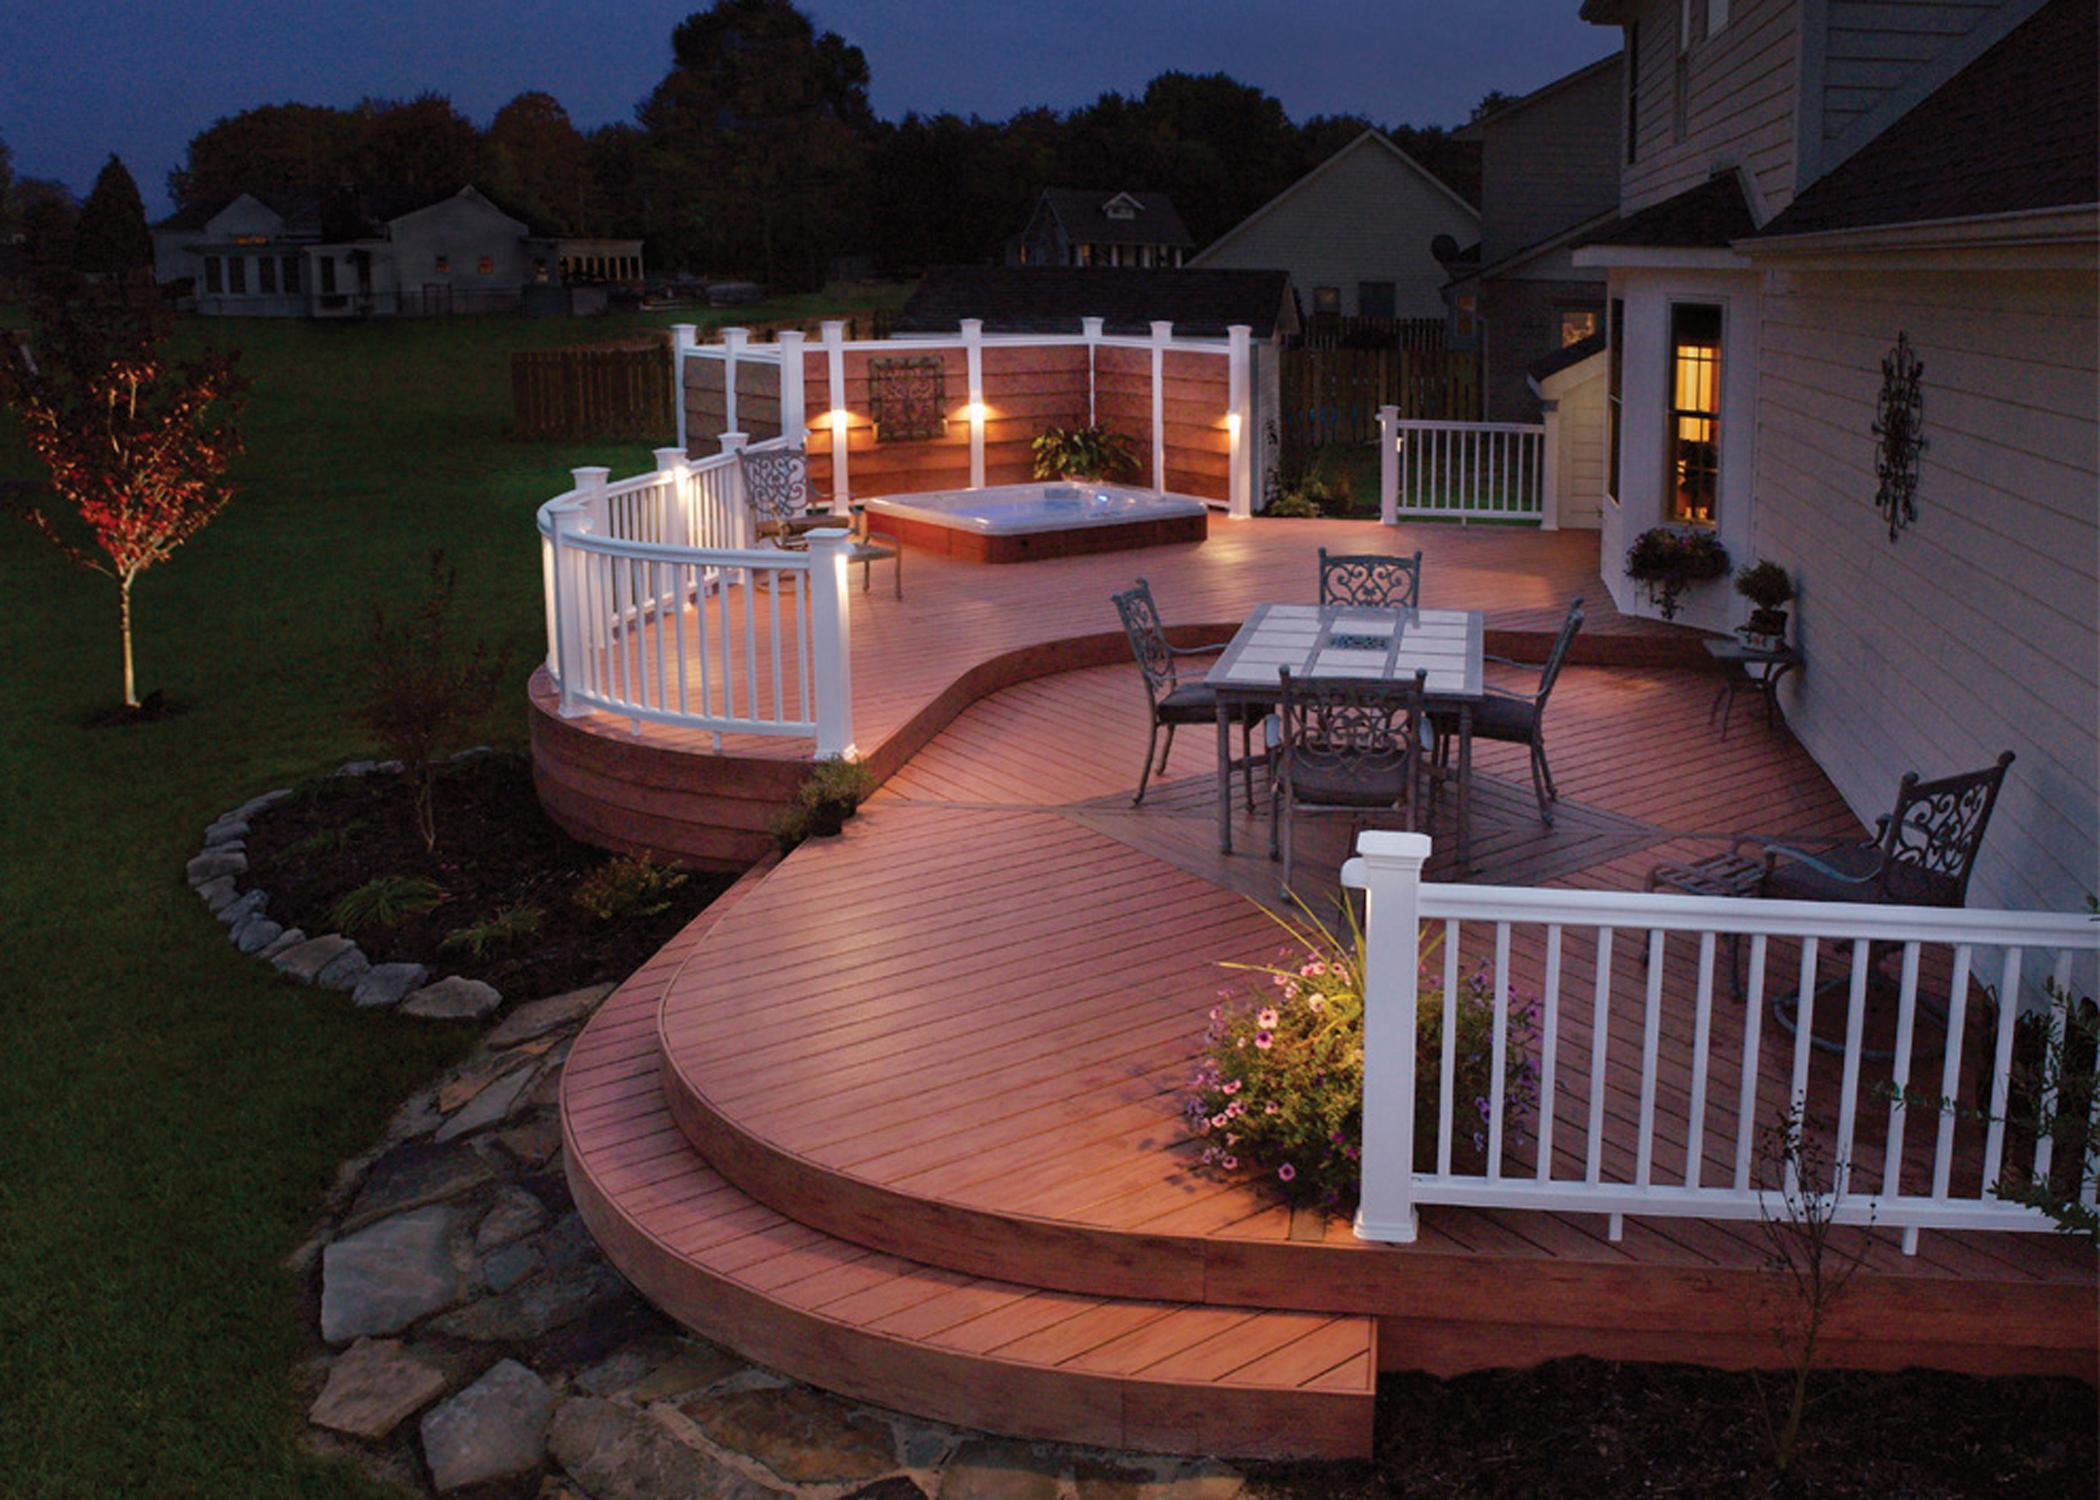 Deck and patio lights-Lakeland FL Outdoor Lighting Installers-We Offer Outdoor Lighting Services, Landscape Lighting, Low Voltage Lighting, Outdoor LED landscape Lighting, Holiday Lighting, Christmas Lighting, Tree Lighting, Canopy Lighting, Residential outdoor Lighting, Commercial outdoor Lighting, Safety Lighting, Path and Garden Lighting, Mini lights and flood lights, Landscape Lighting installation, Outdoor spot lights, Outdoor LED garden Lighting, Dock Lighting, Accent lights, Deck and patio lights, Security lights, Underwater Lighting, Tree upLighting, Outdoor Lighting repair services, and more.